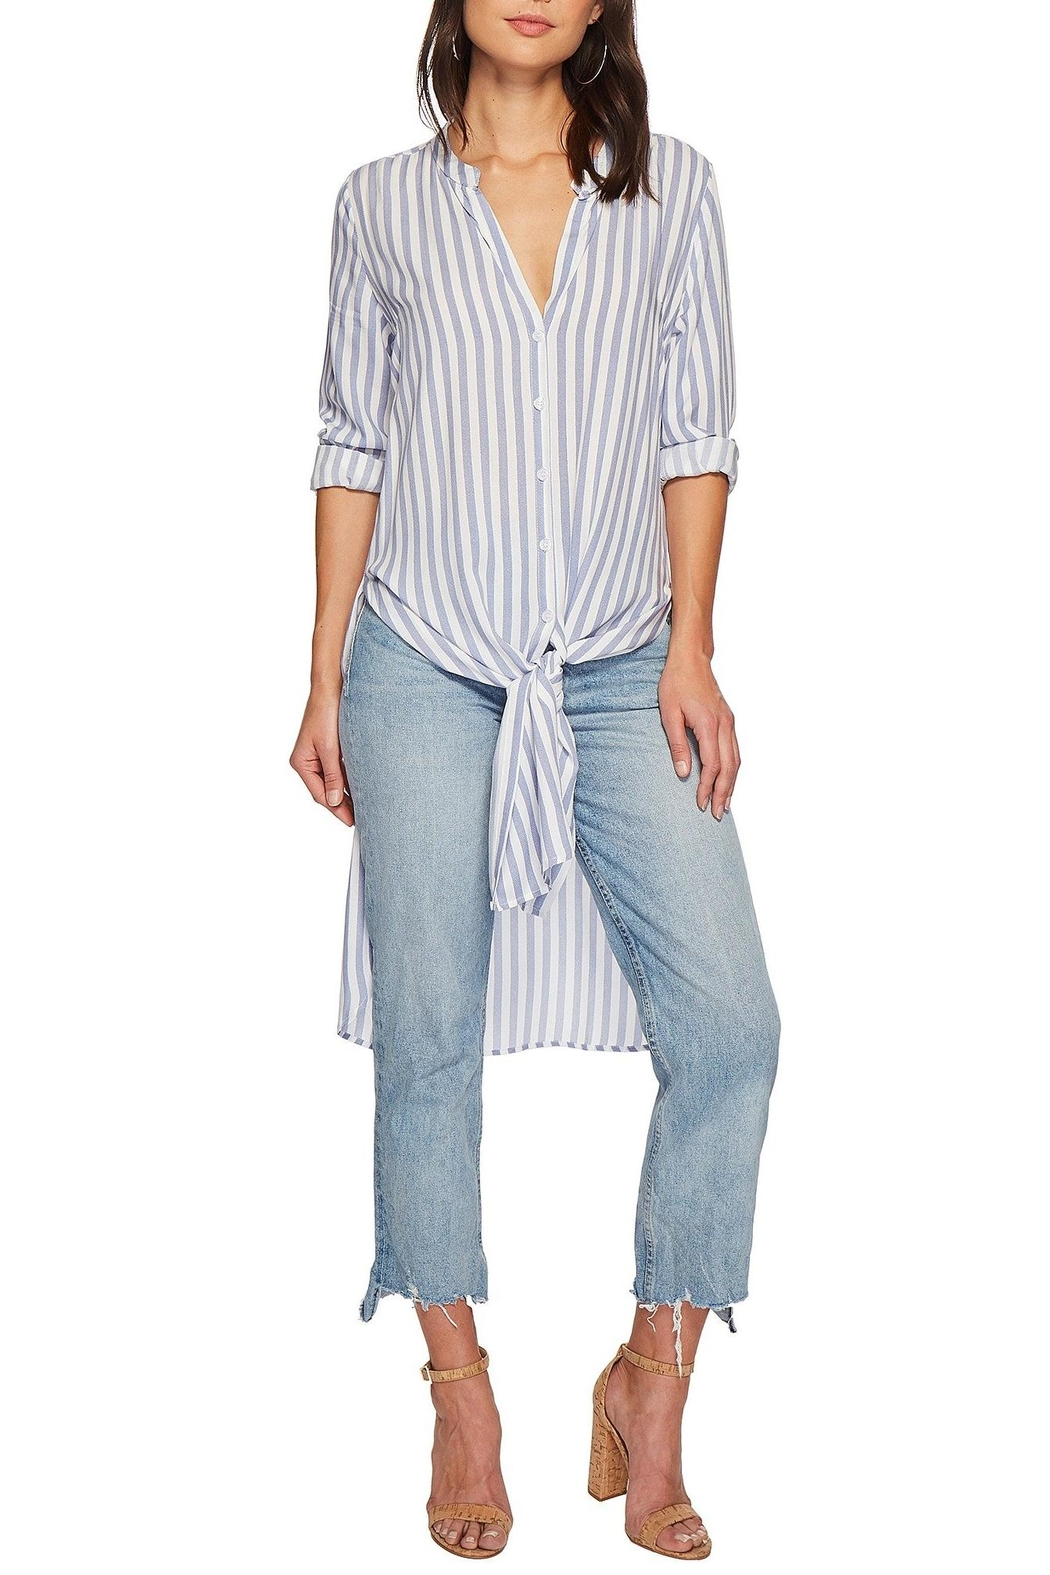 Bishop + Young Stripe Tie-Front Tunic - Main Image